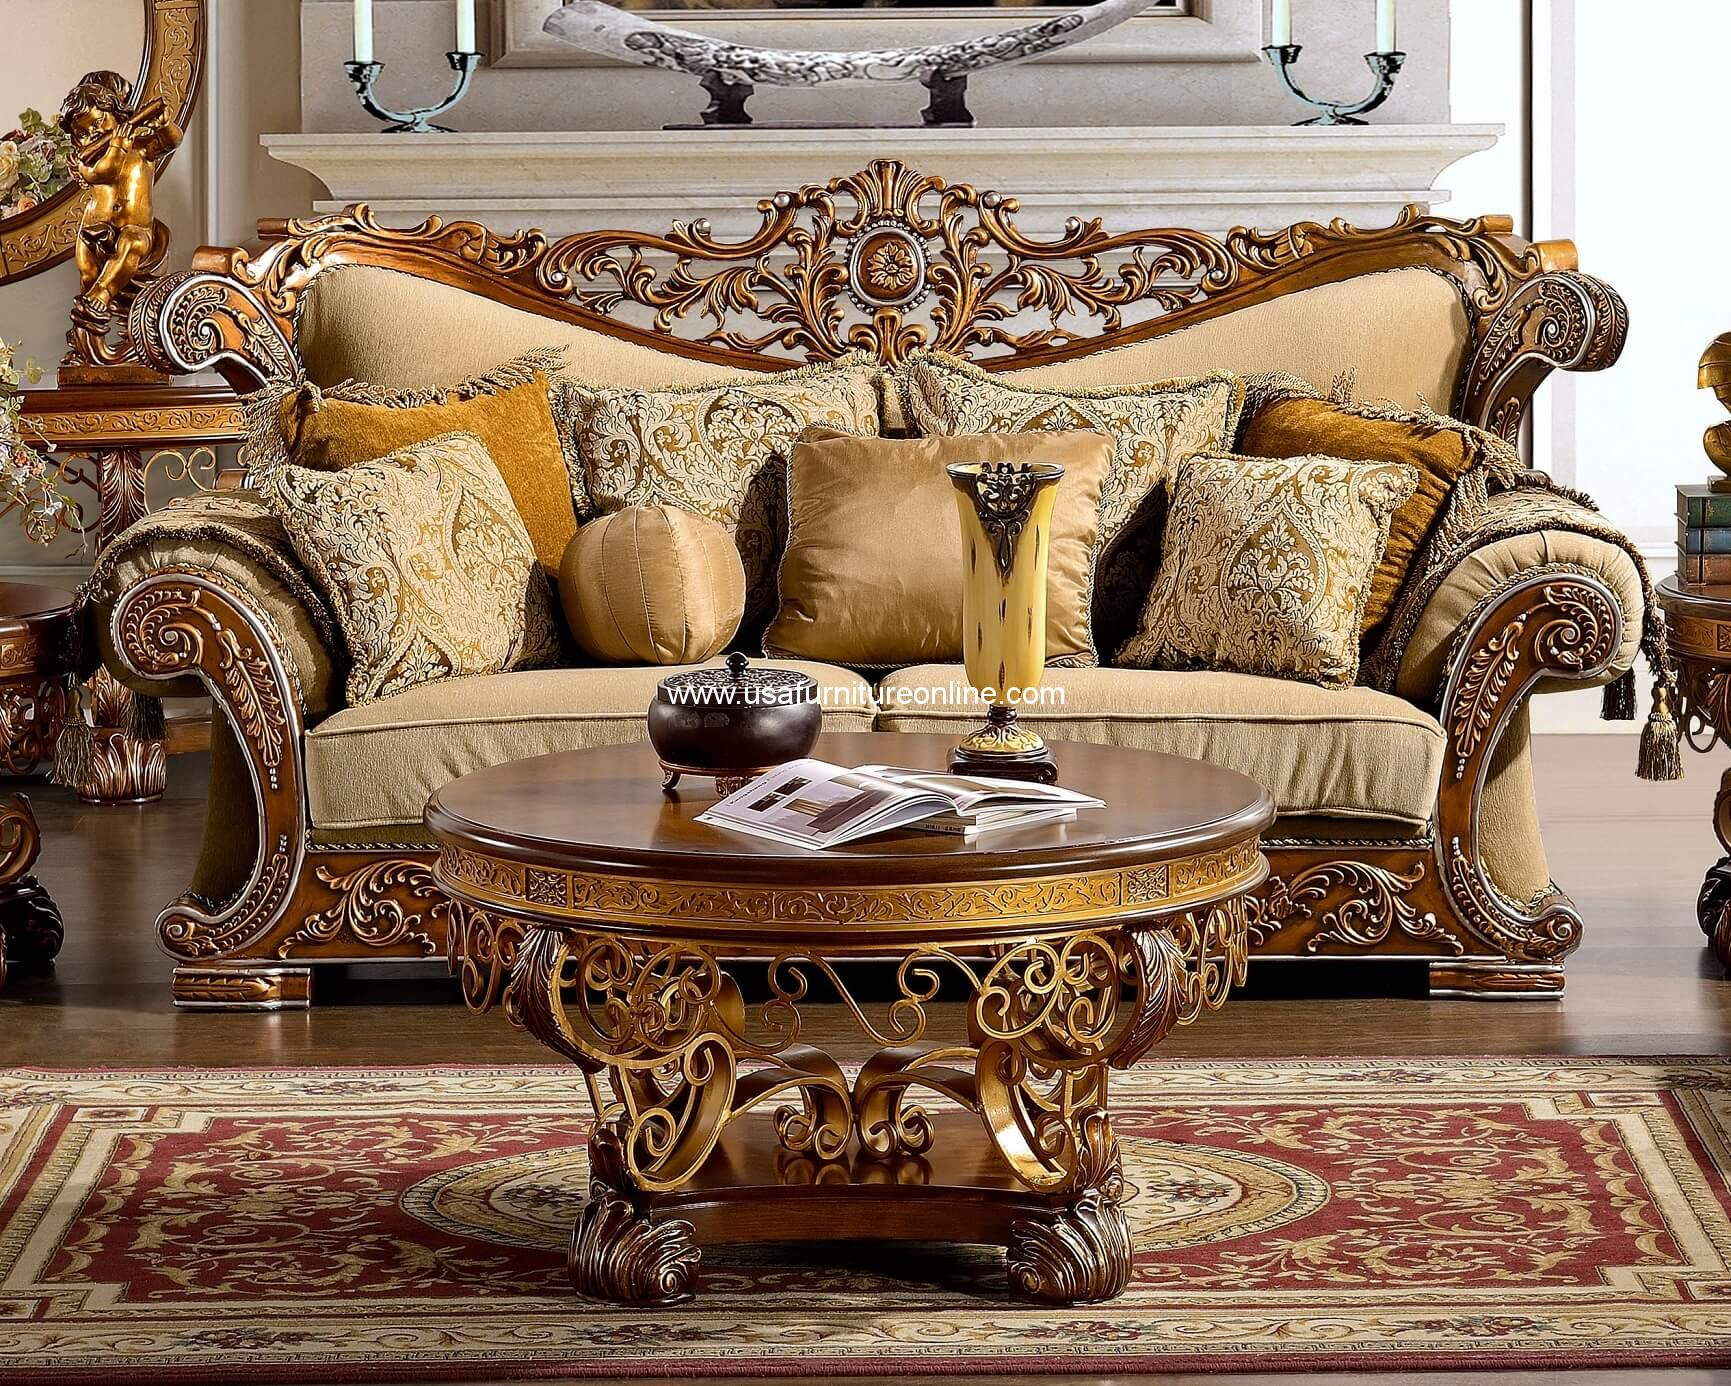 Royal Golden Sofa HD 369